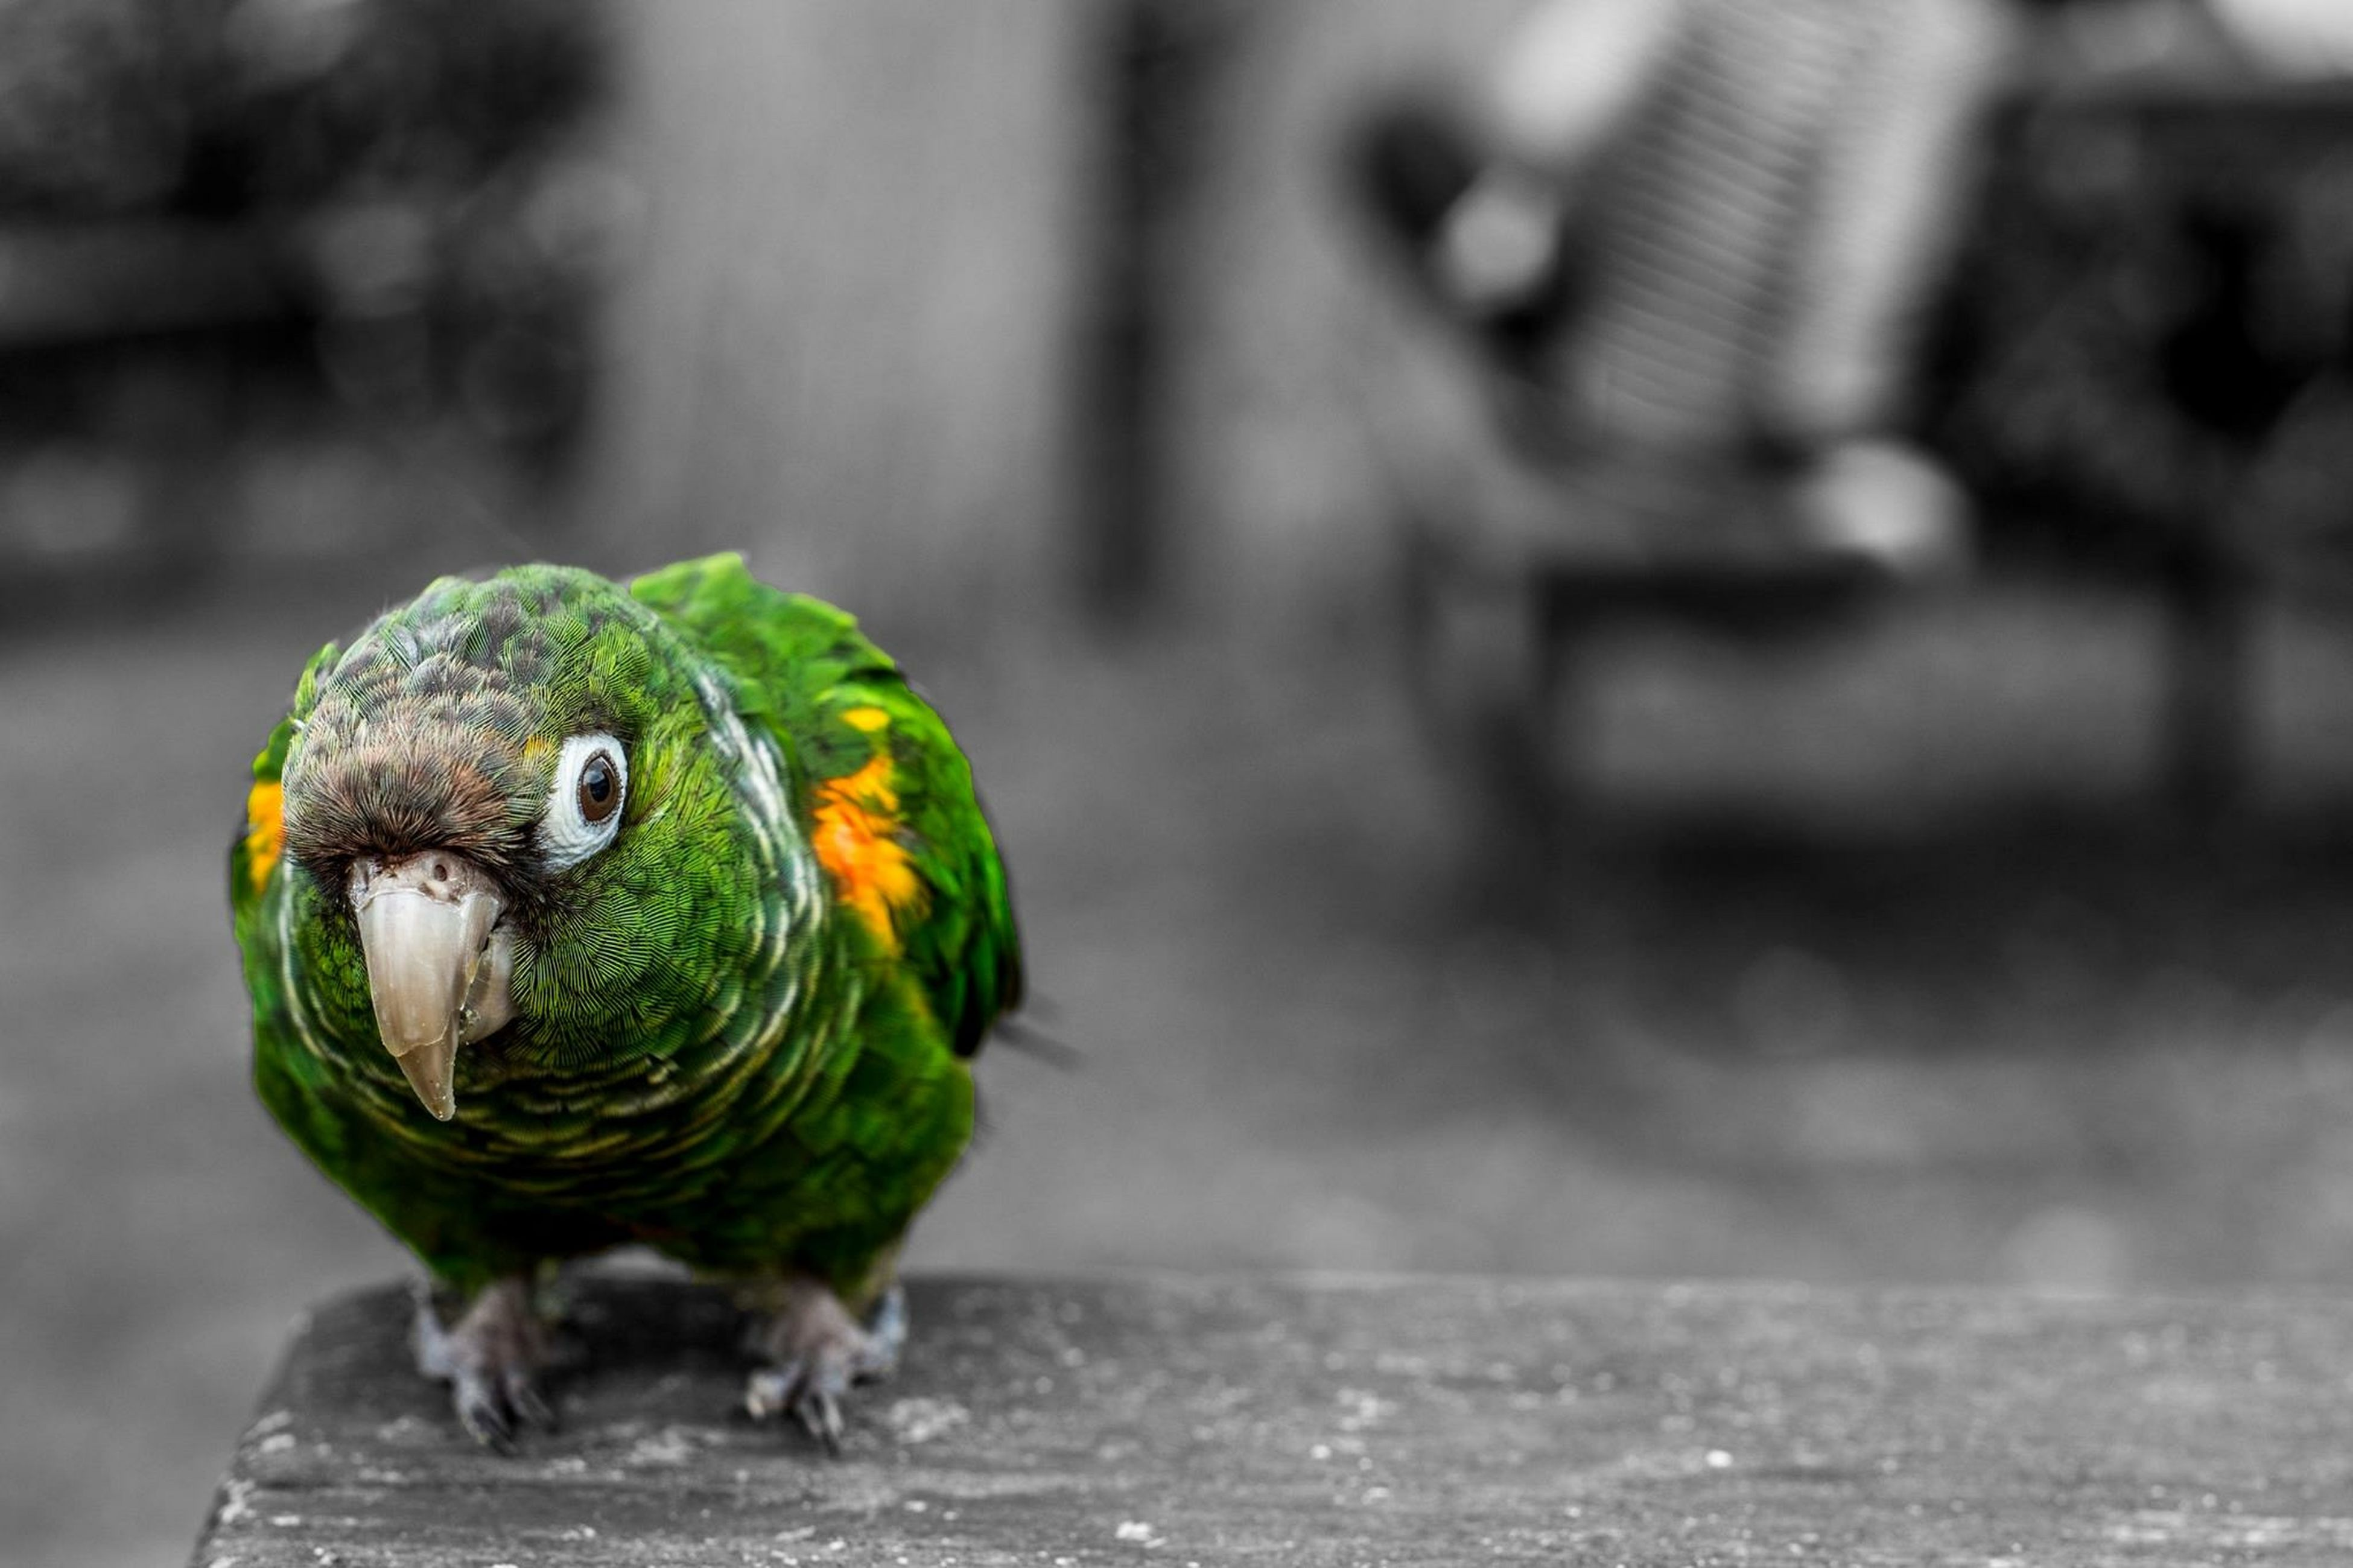 animal themes, bird, animals in the wild, one animal, wildlife, focus on foreground, multi colored, close-up, parrot, full length, beak, perching, selective focus, two animals, outdoors, side view, nature, day, no people, portrait